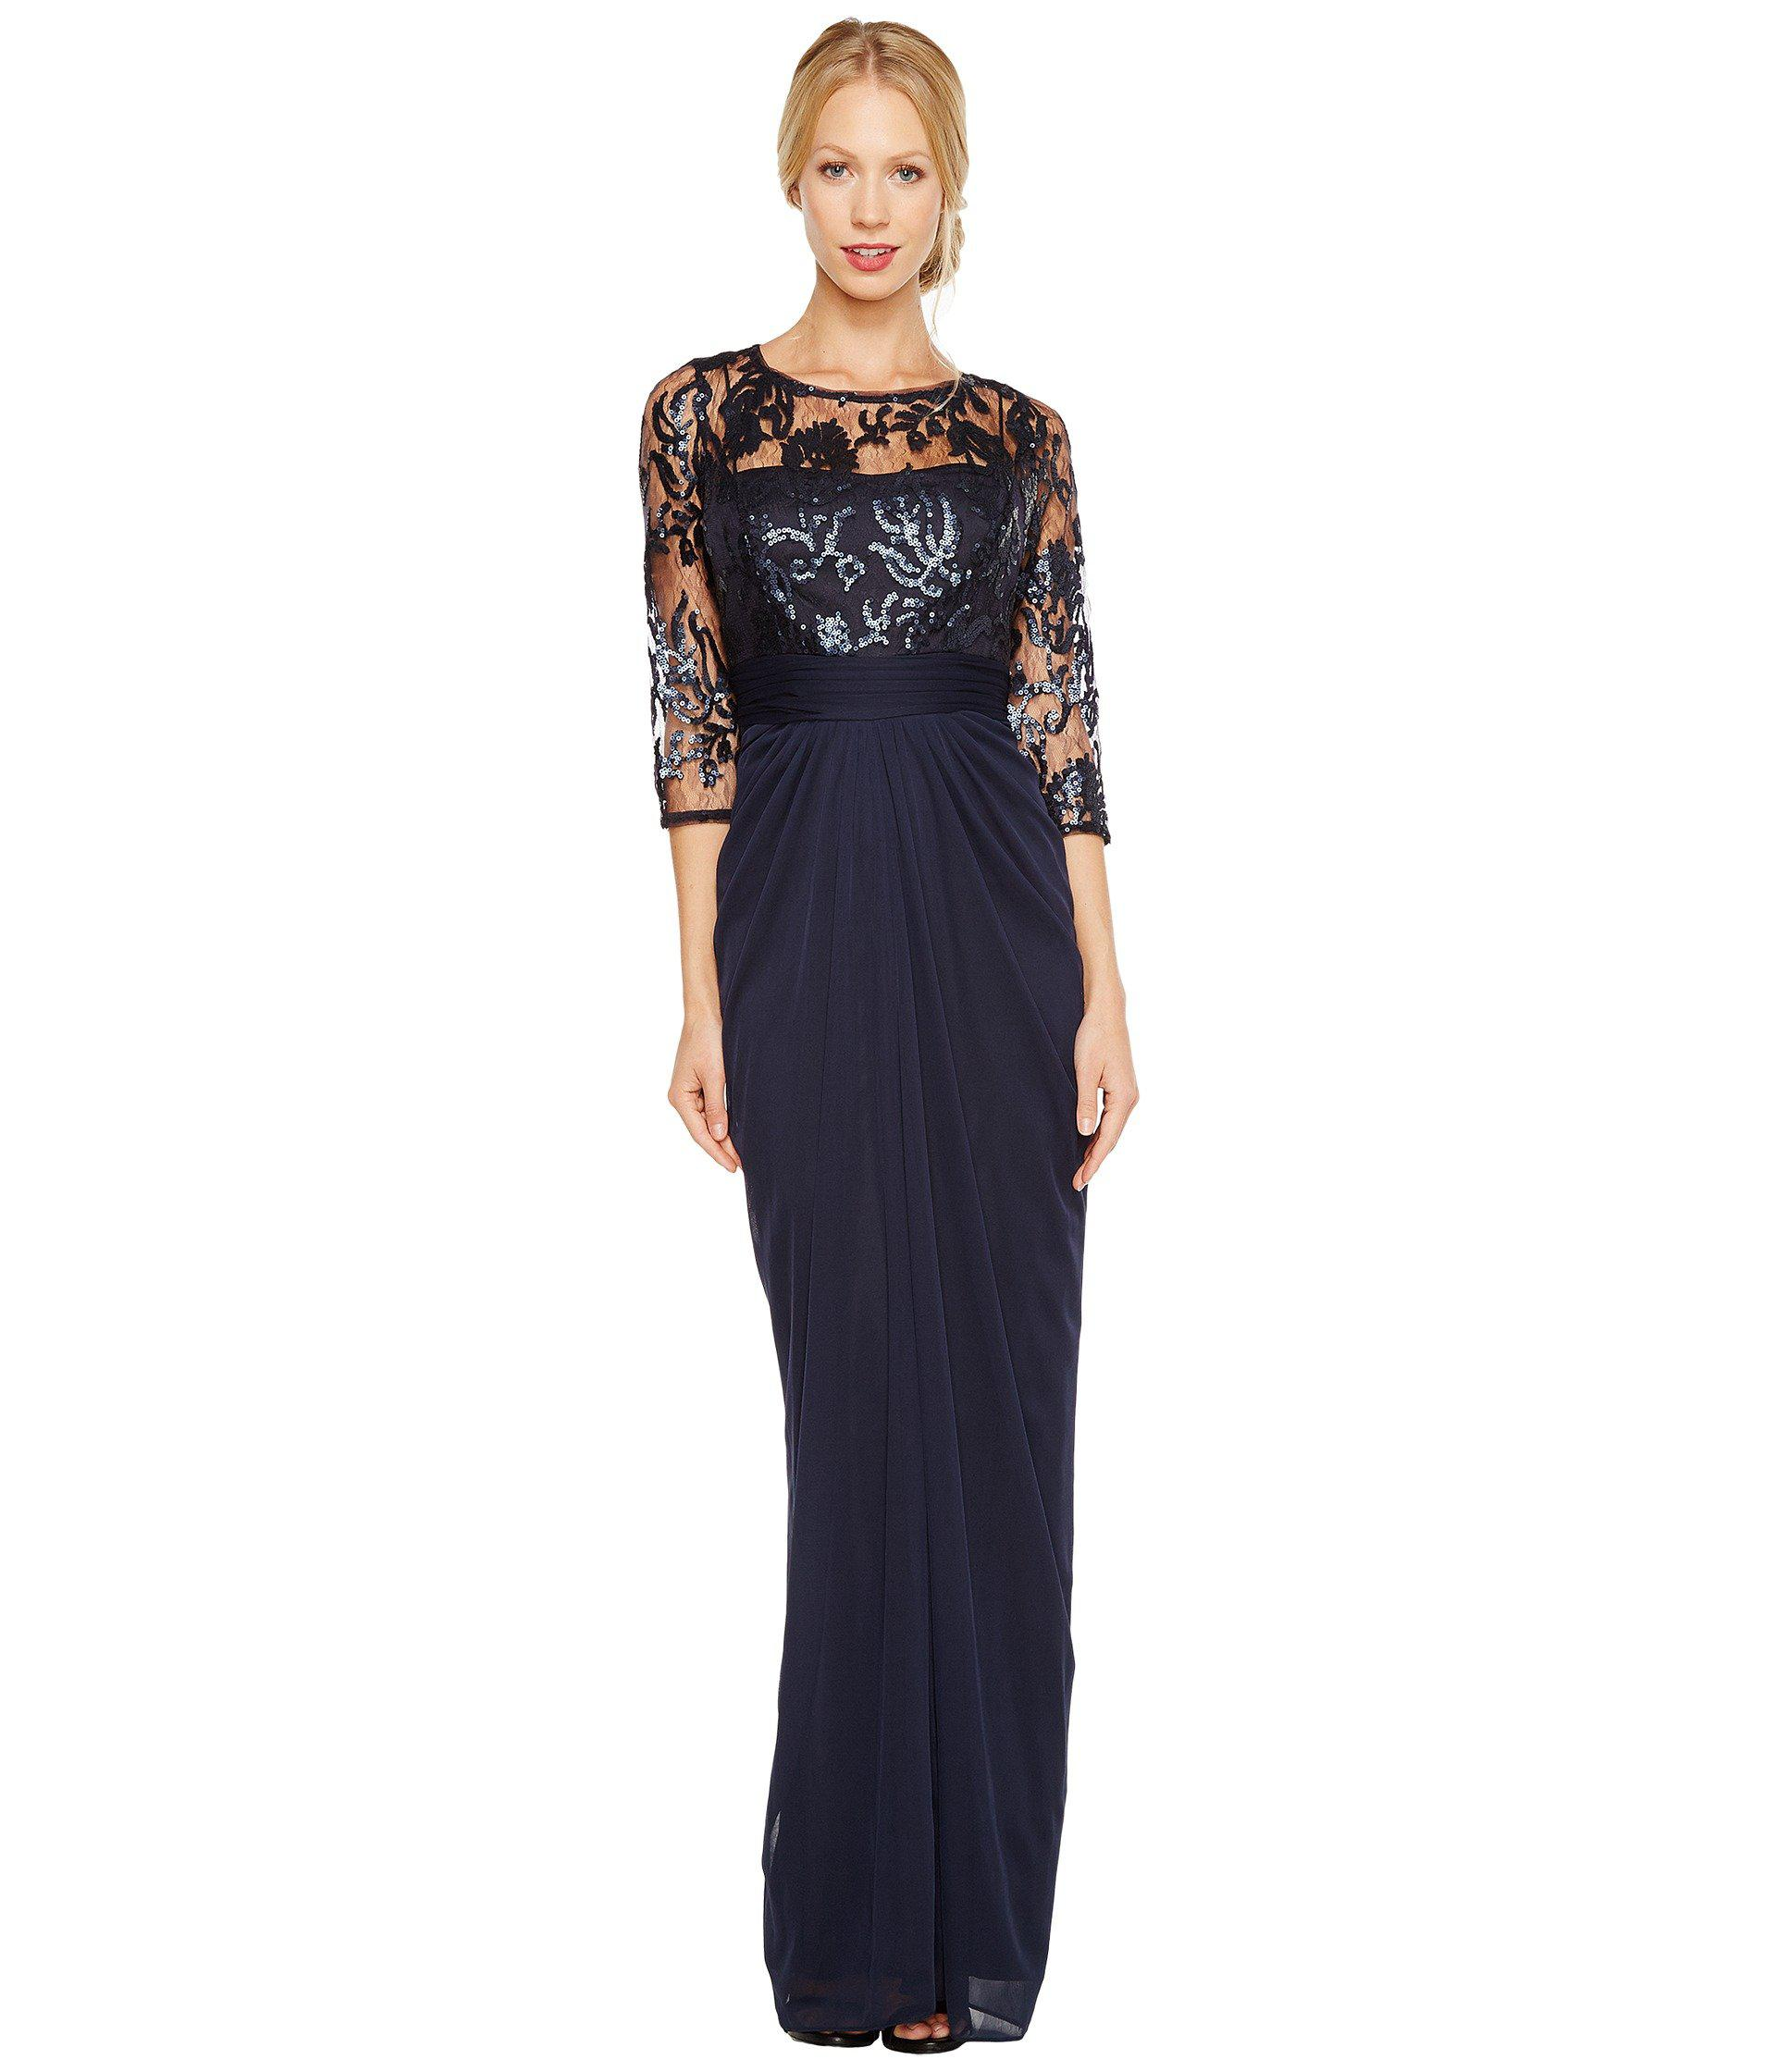 9d82325a30a13 Lyst - Adrianna Papell Embroidered Sequin Bodice Drape Gown in Blue